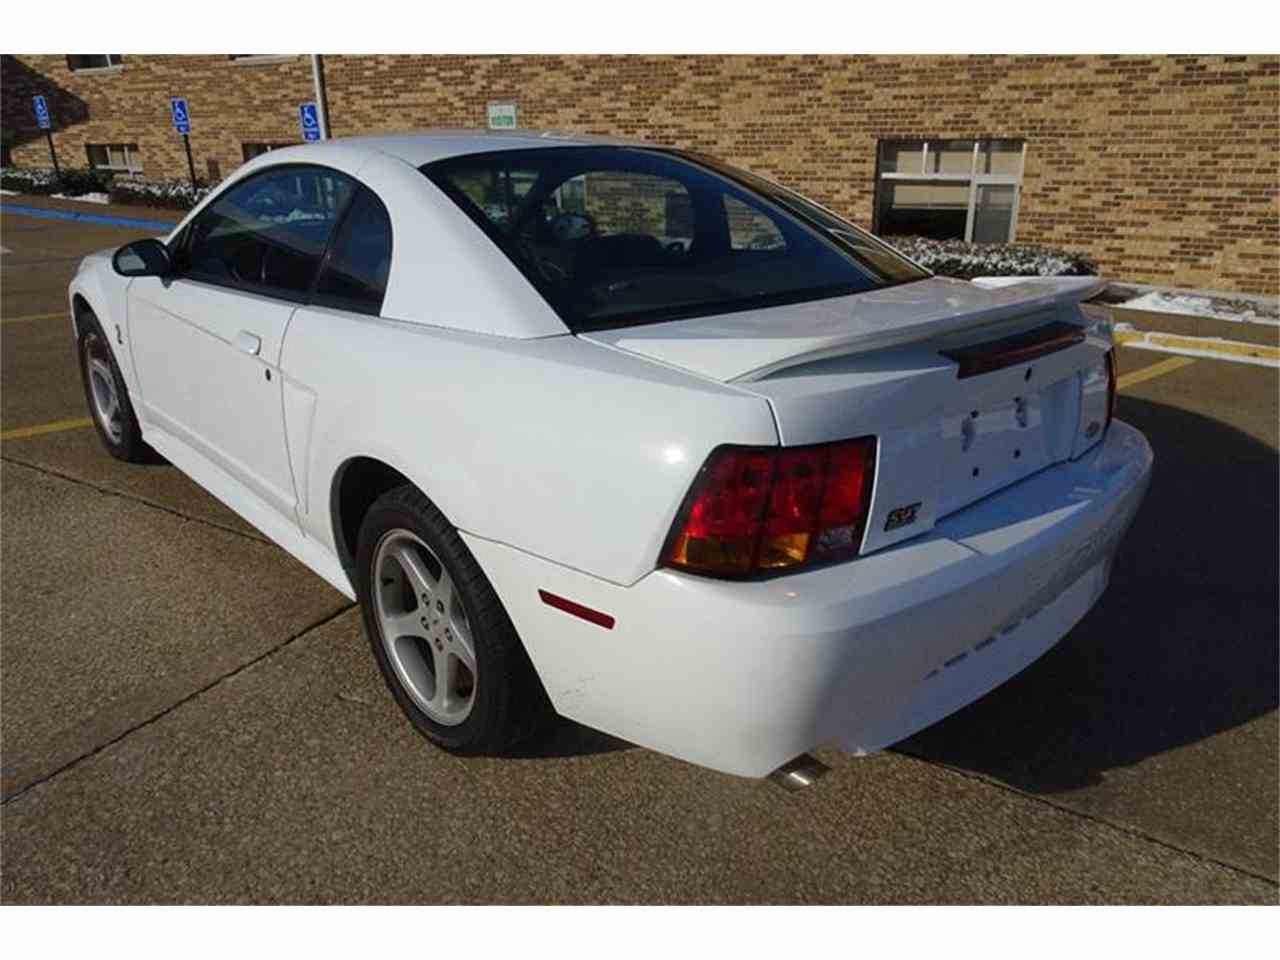 Large Picture of 1999 Ford Mustang SVT Cobra located in Iowa - $11,995.00 Offered by Kinion Auto Sales & Service - MZKE